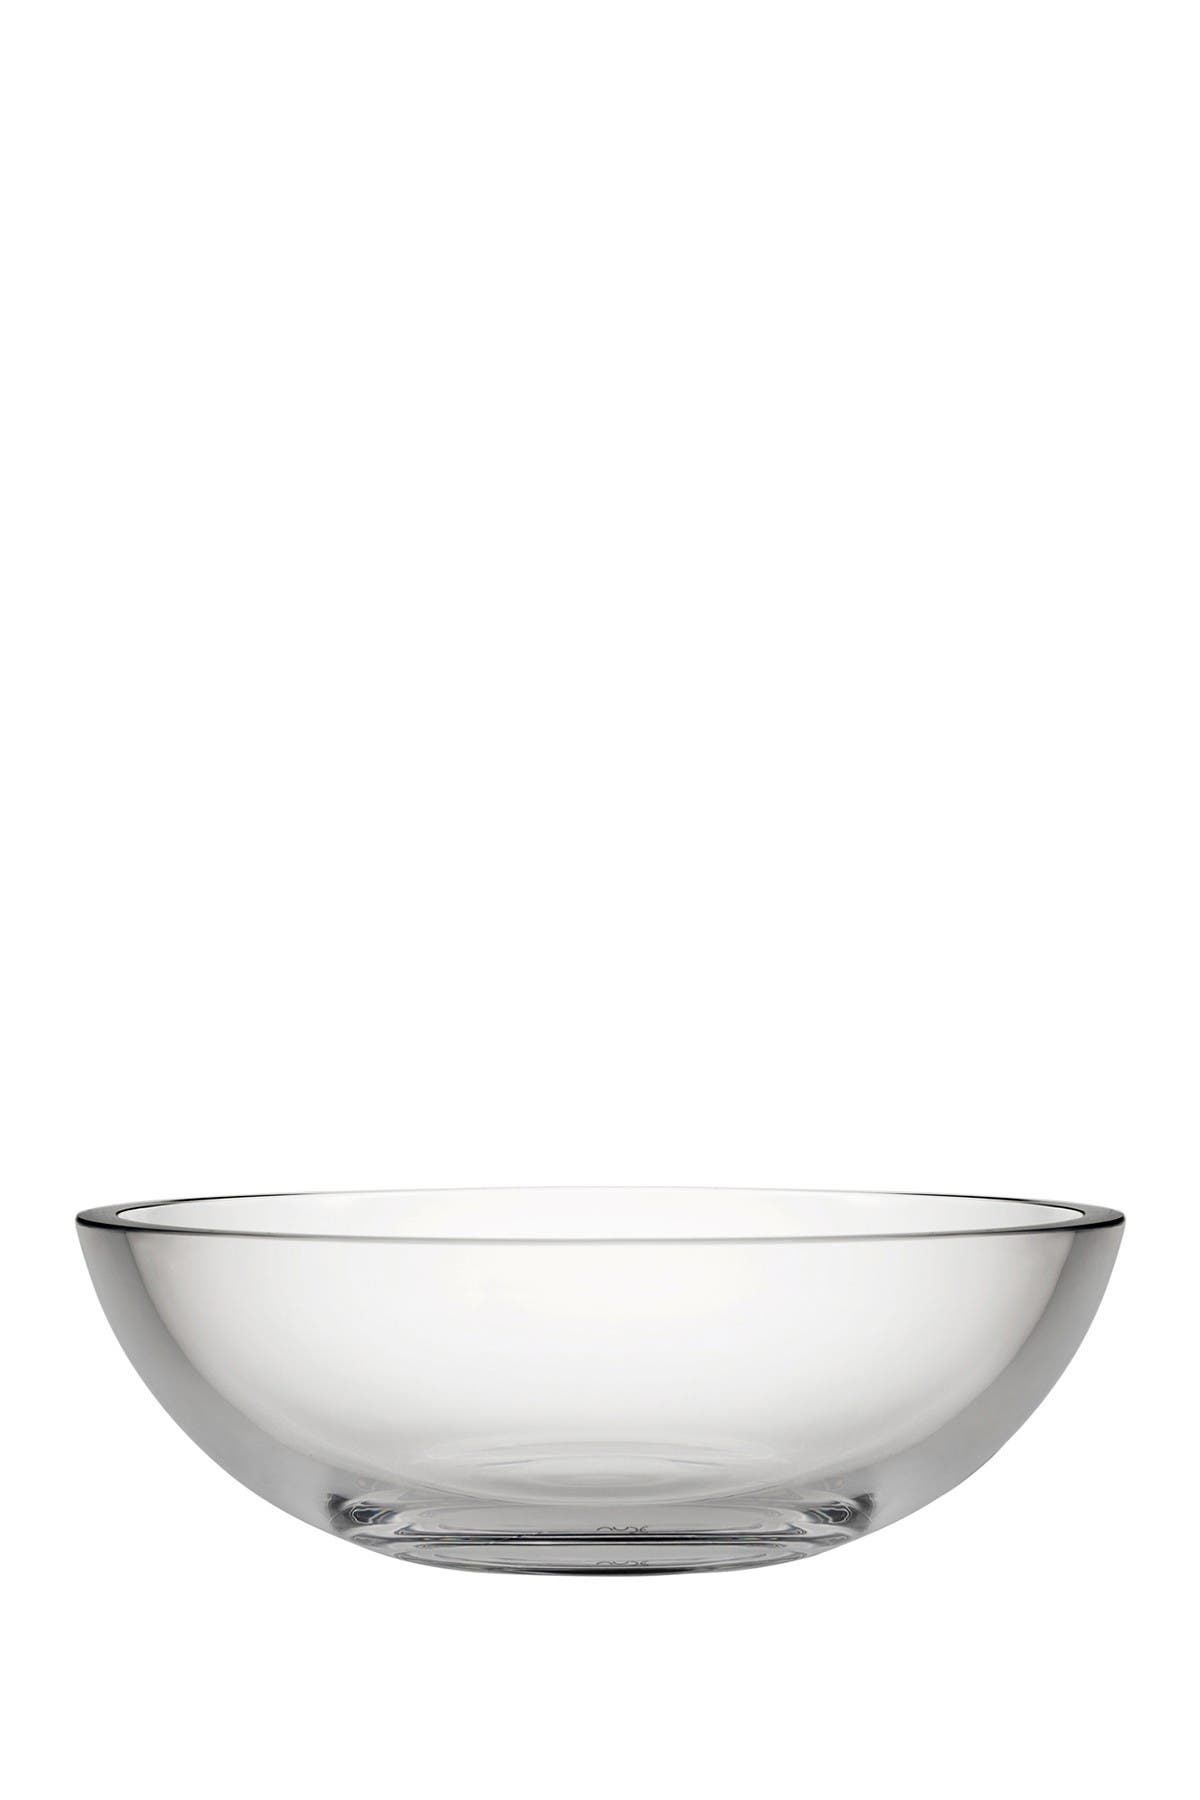 Image of Nude Glass Mini Lily Bowl - Medium - Clear